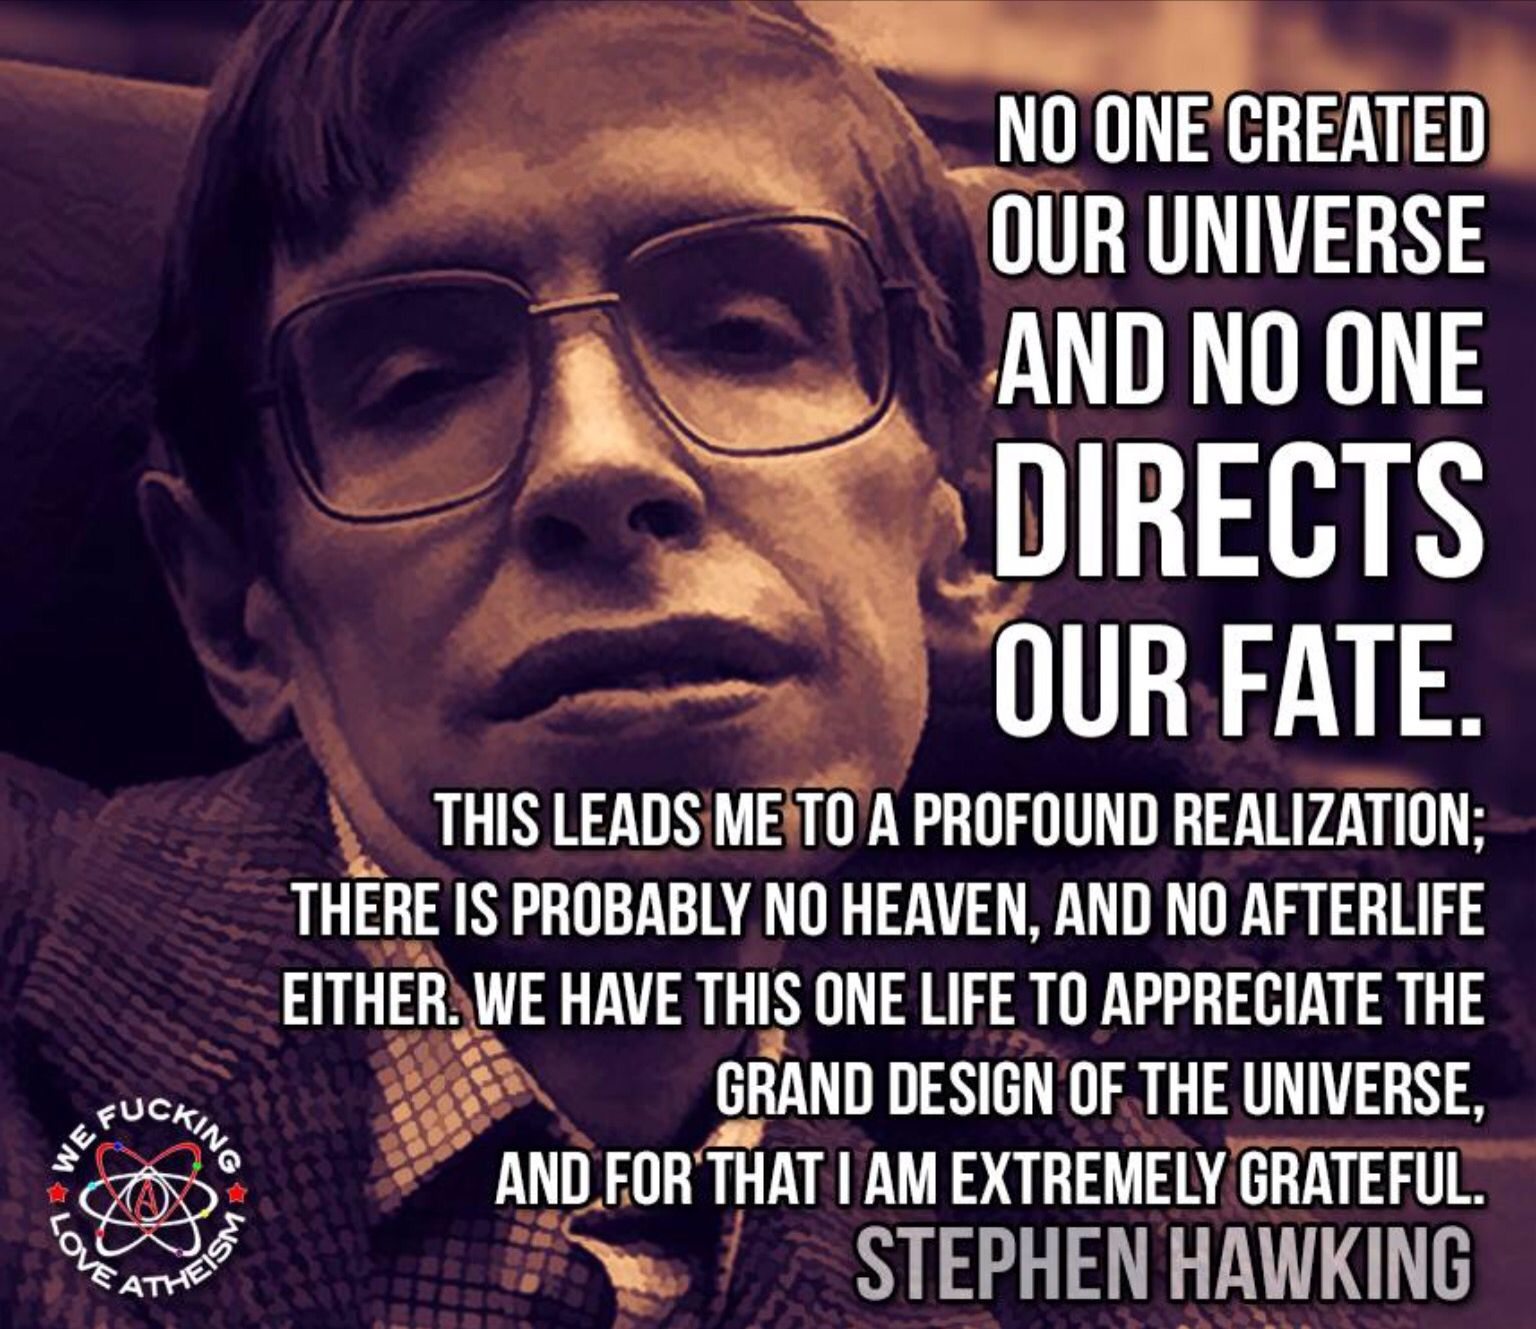 No One Created Our Universe And No One Directs Our Fate Stephen